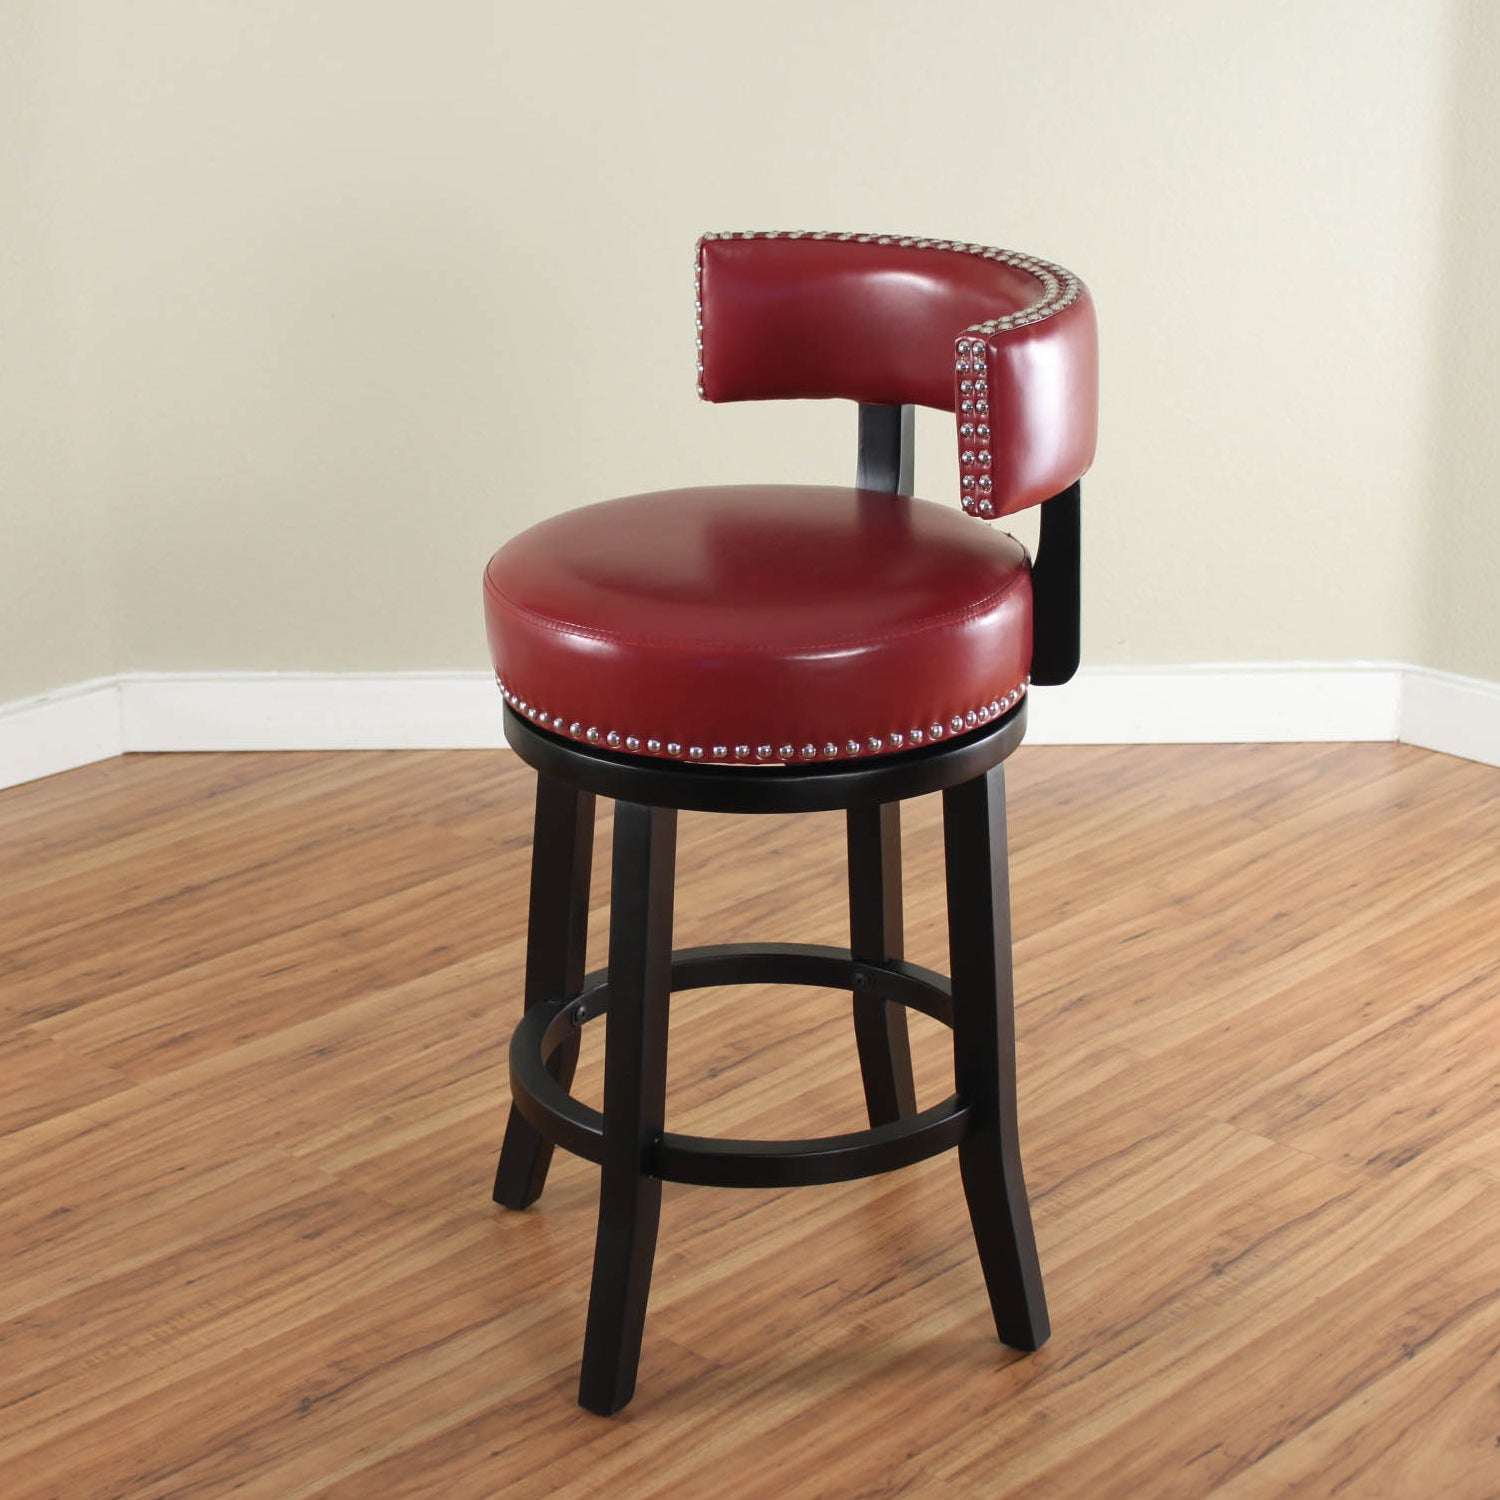 toronto star backless back with stools australia galaxy red bar office stool fauxather arms dark leather barstools canada